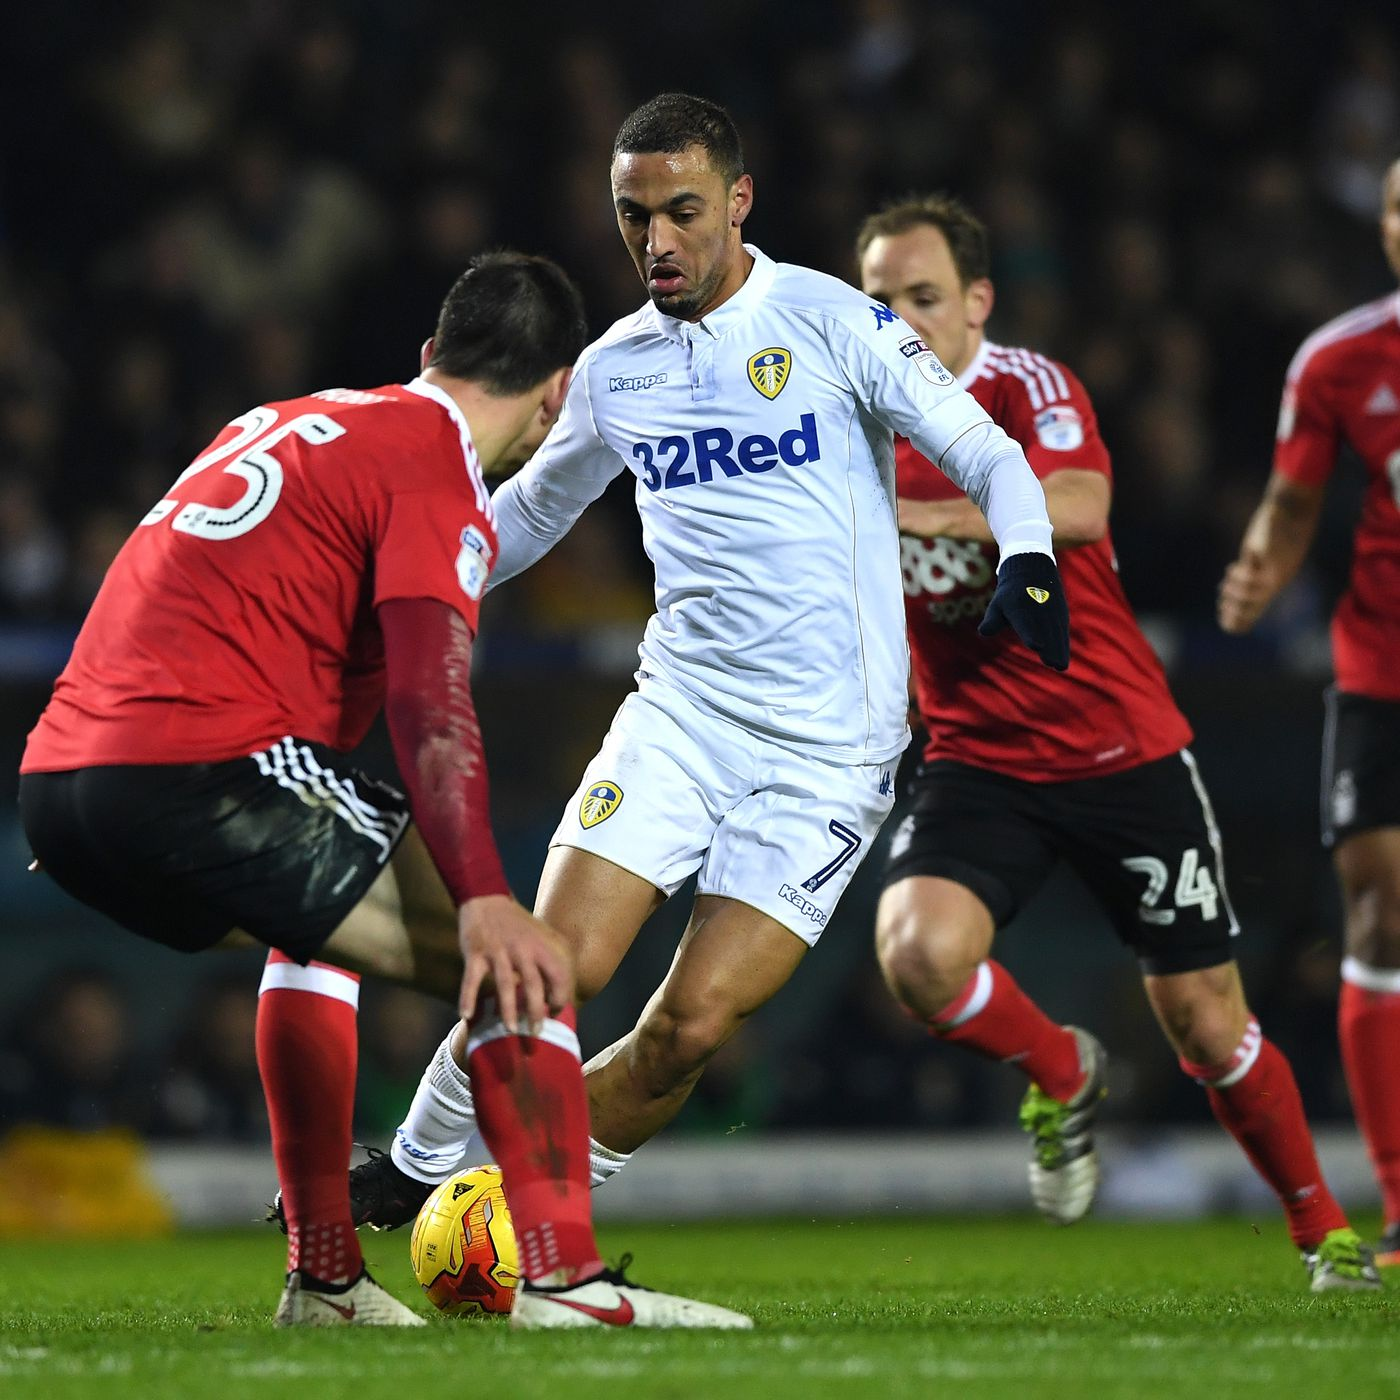 d98258e11d8f With Kemar Roofe, Leeds United already have their Dwight Gayle - Through It  All Together